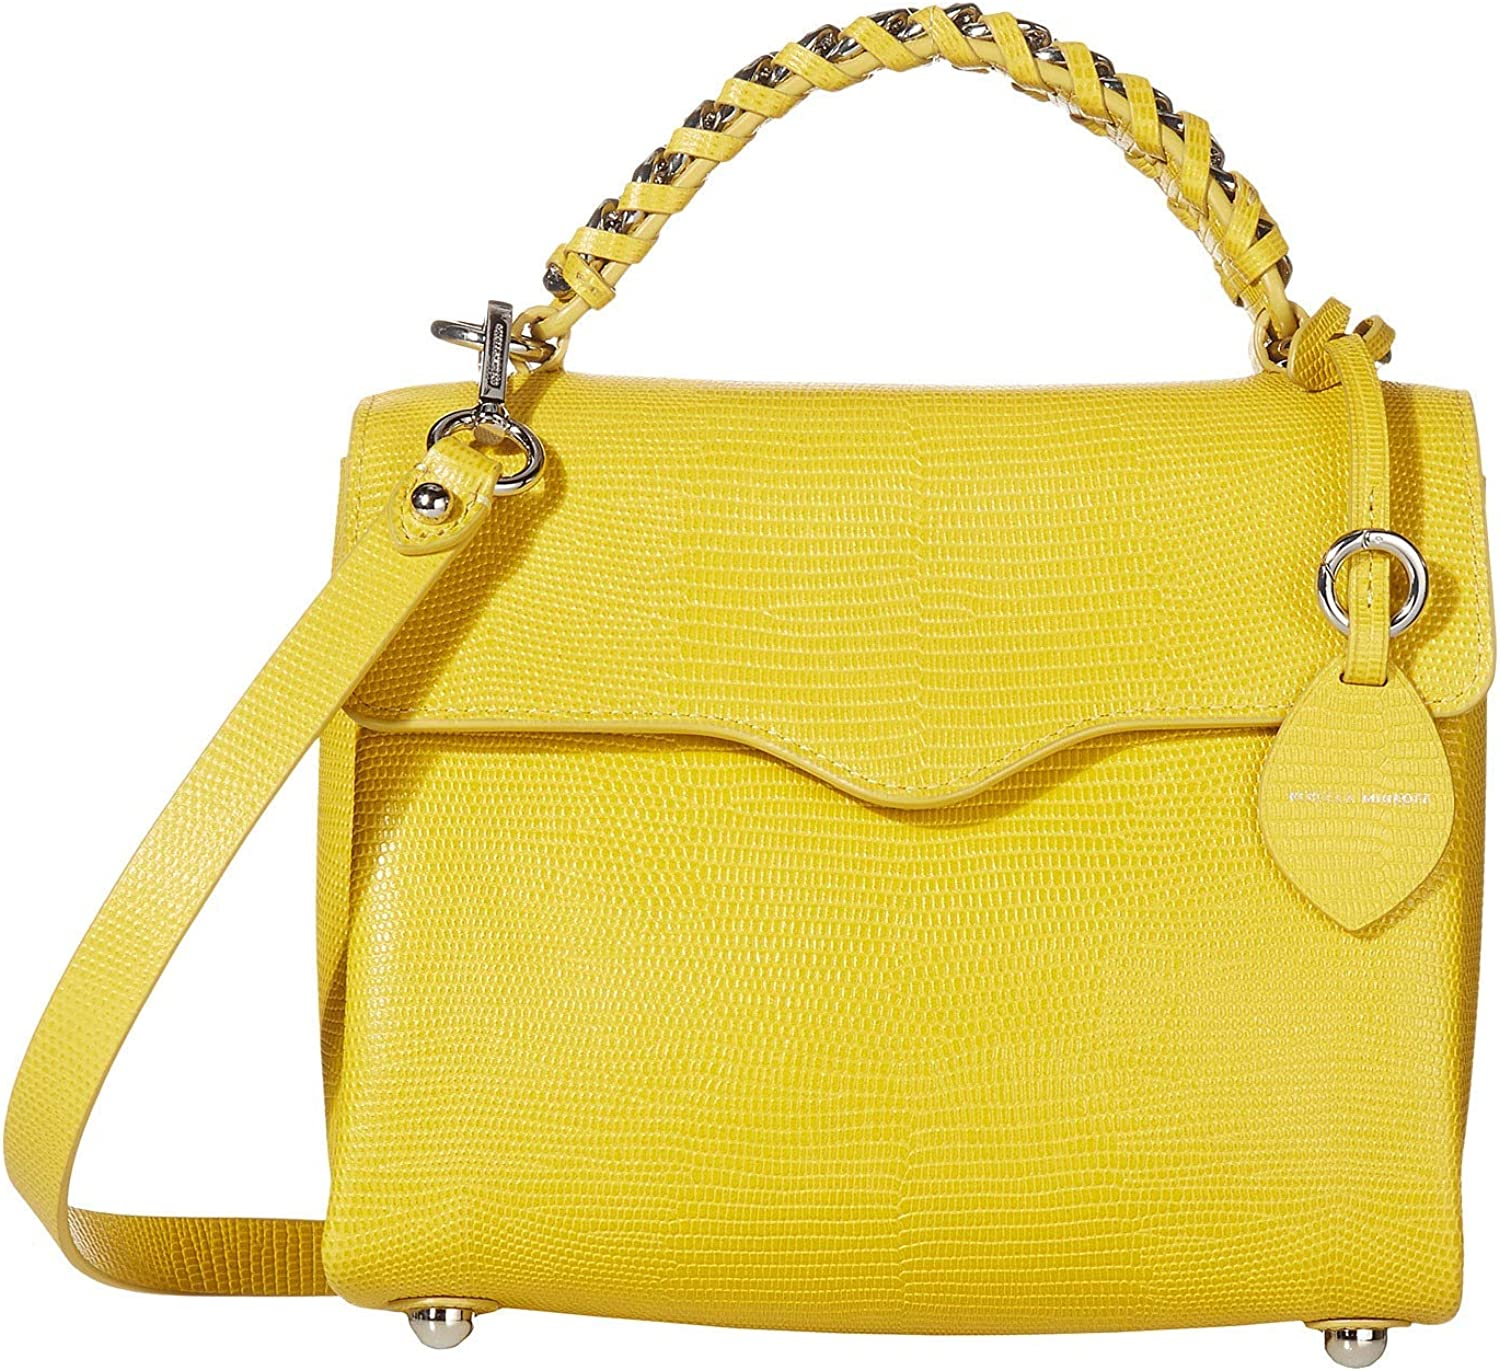 Rebecca Online limited product Minkoff Satchel Chain High quality new